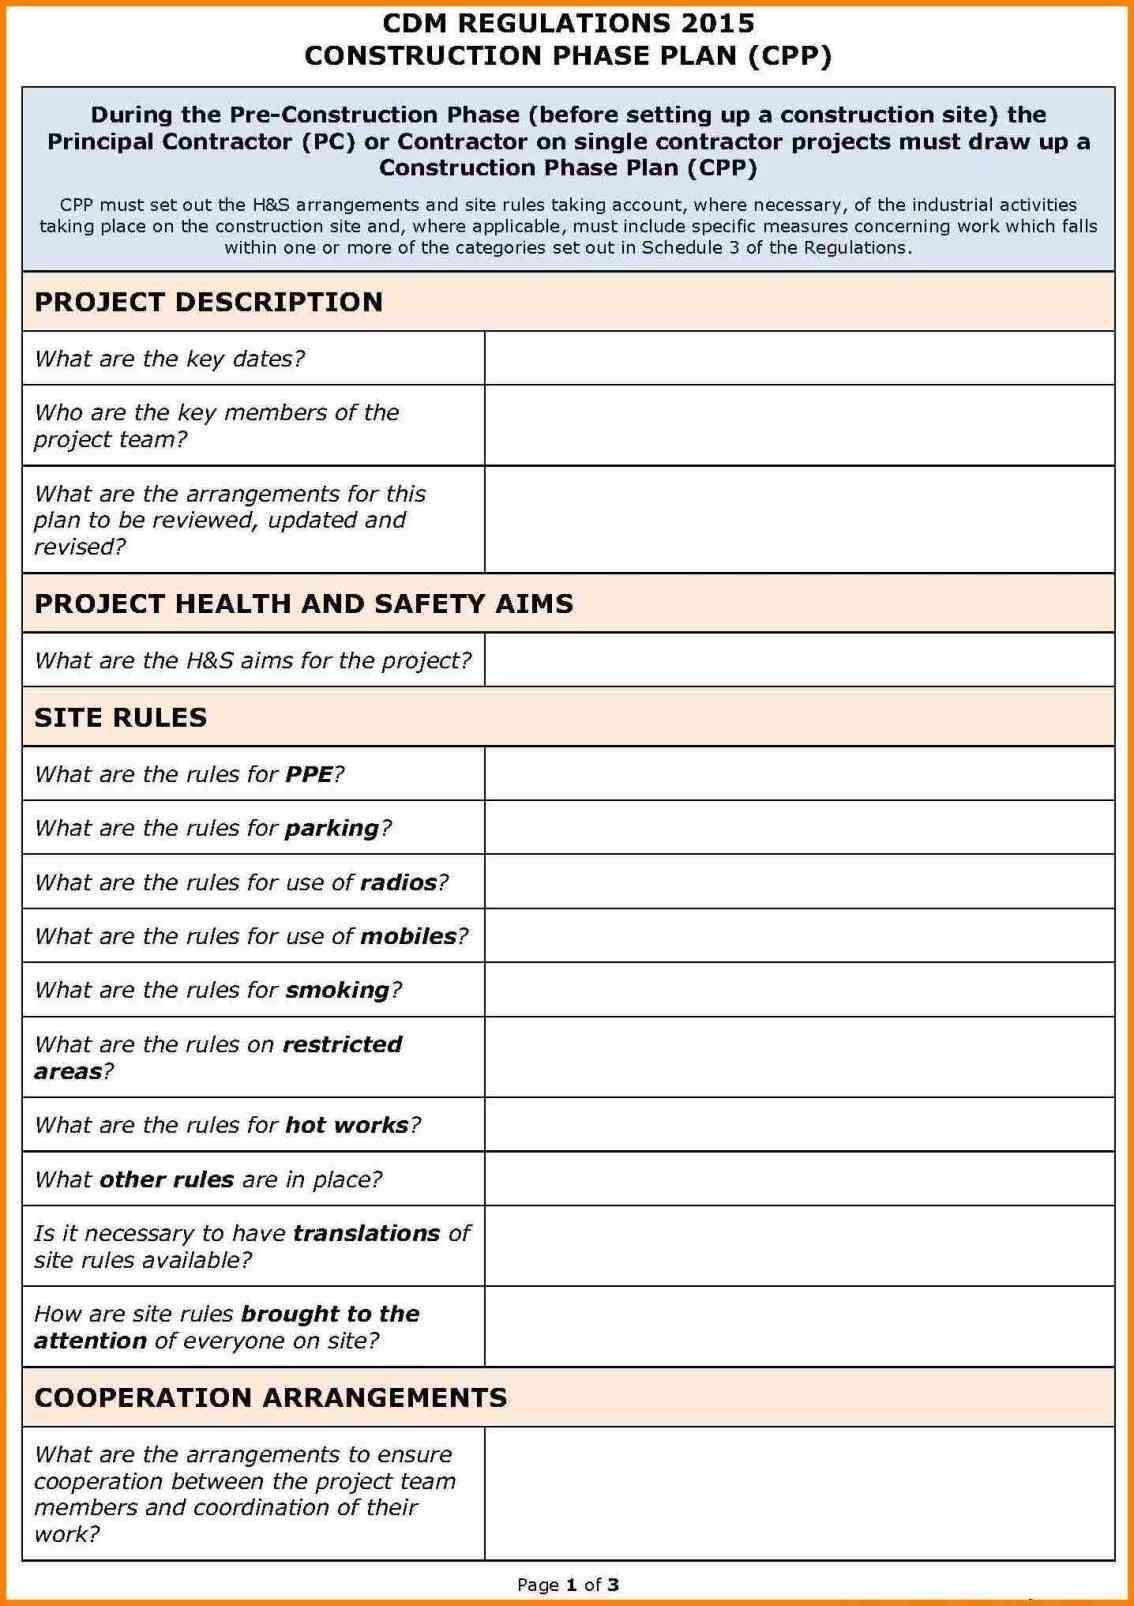 Planning Download Pdf Plan Template Meal Spreadsheet Construction Construction Safety How To Plan Elementary Lesson Plan Template Simple Business Plan Template Site specific safety plans template